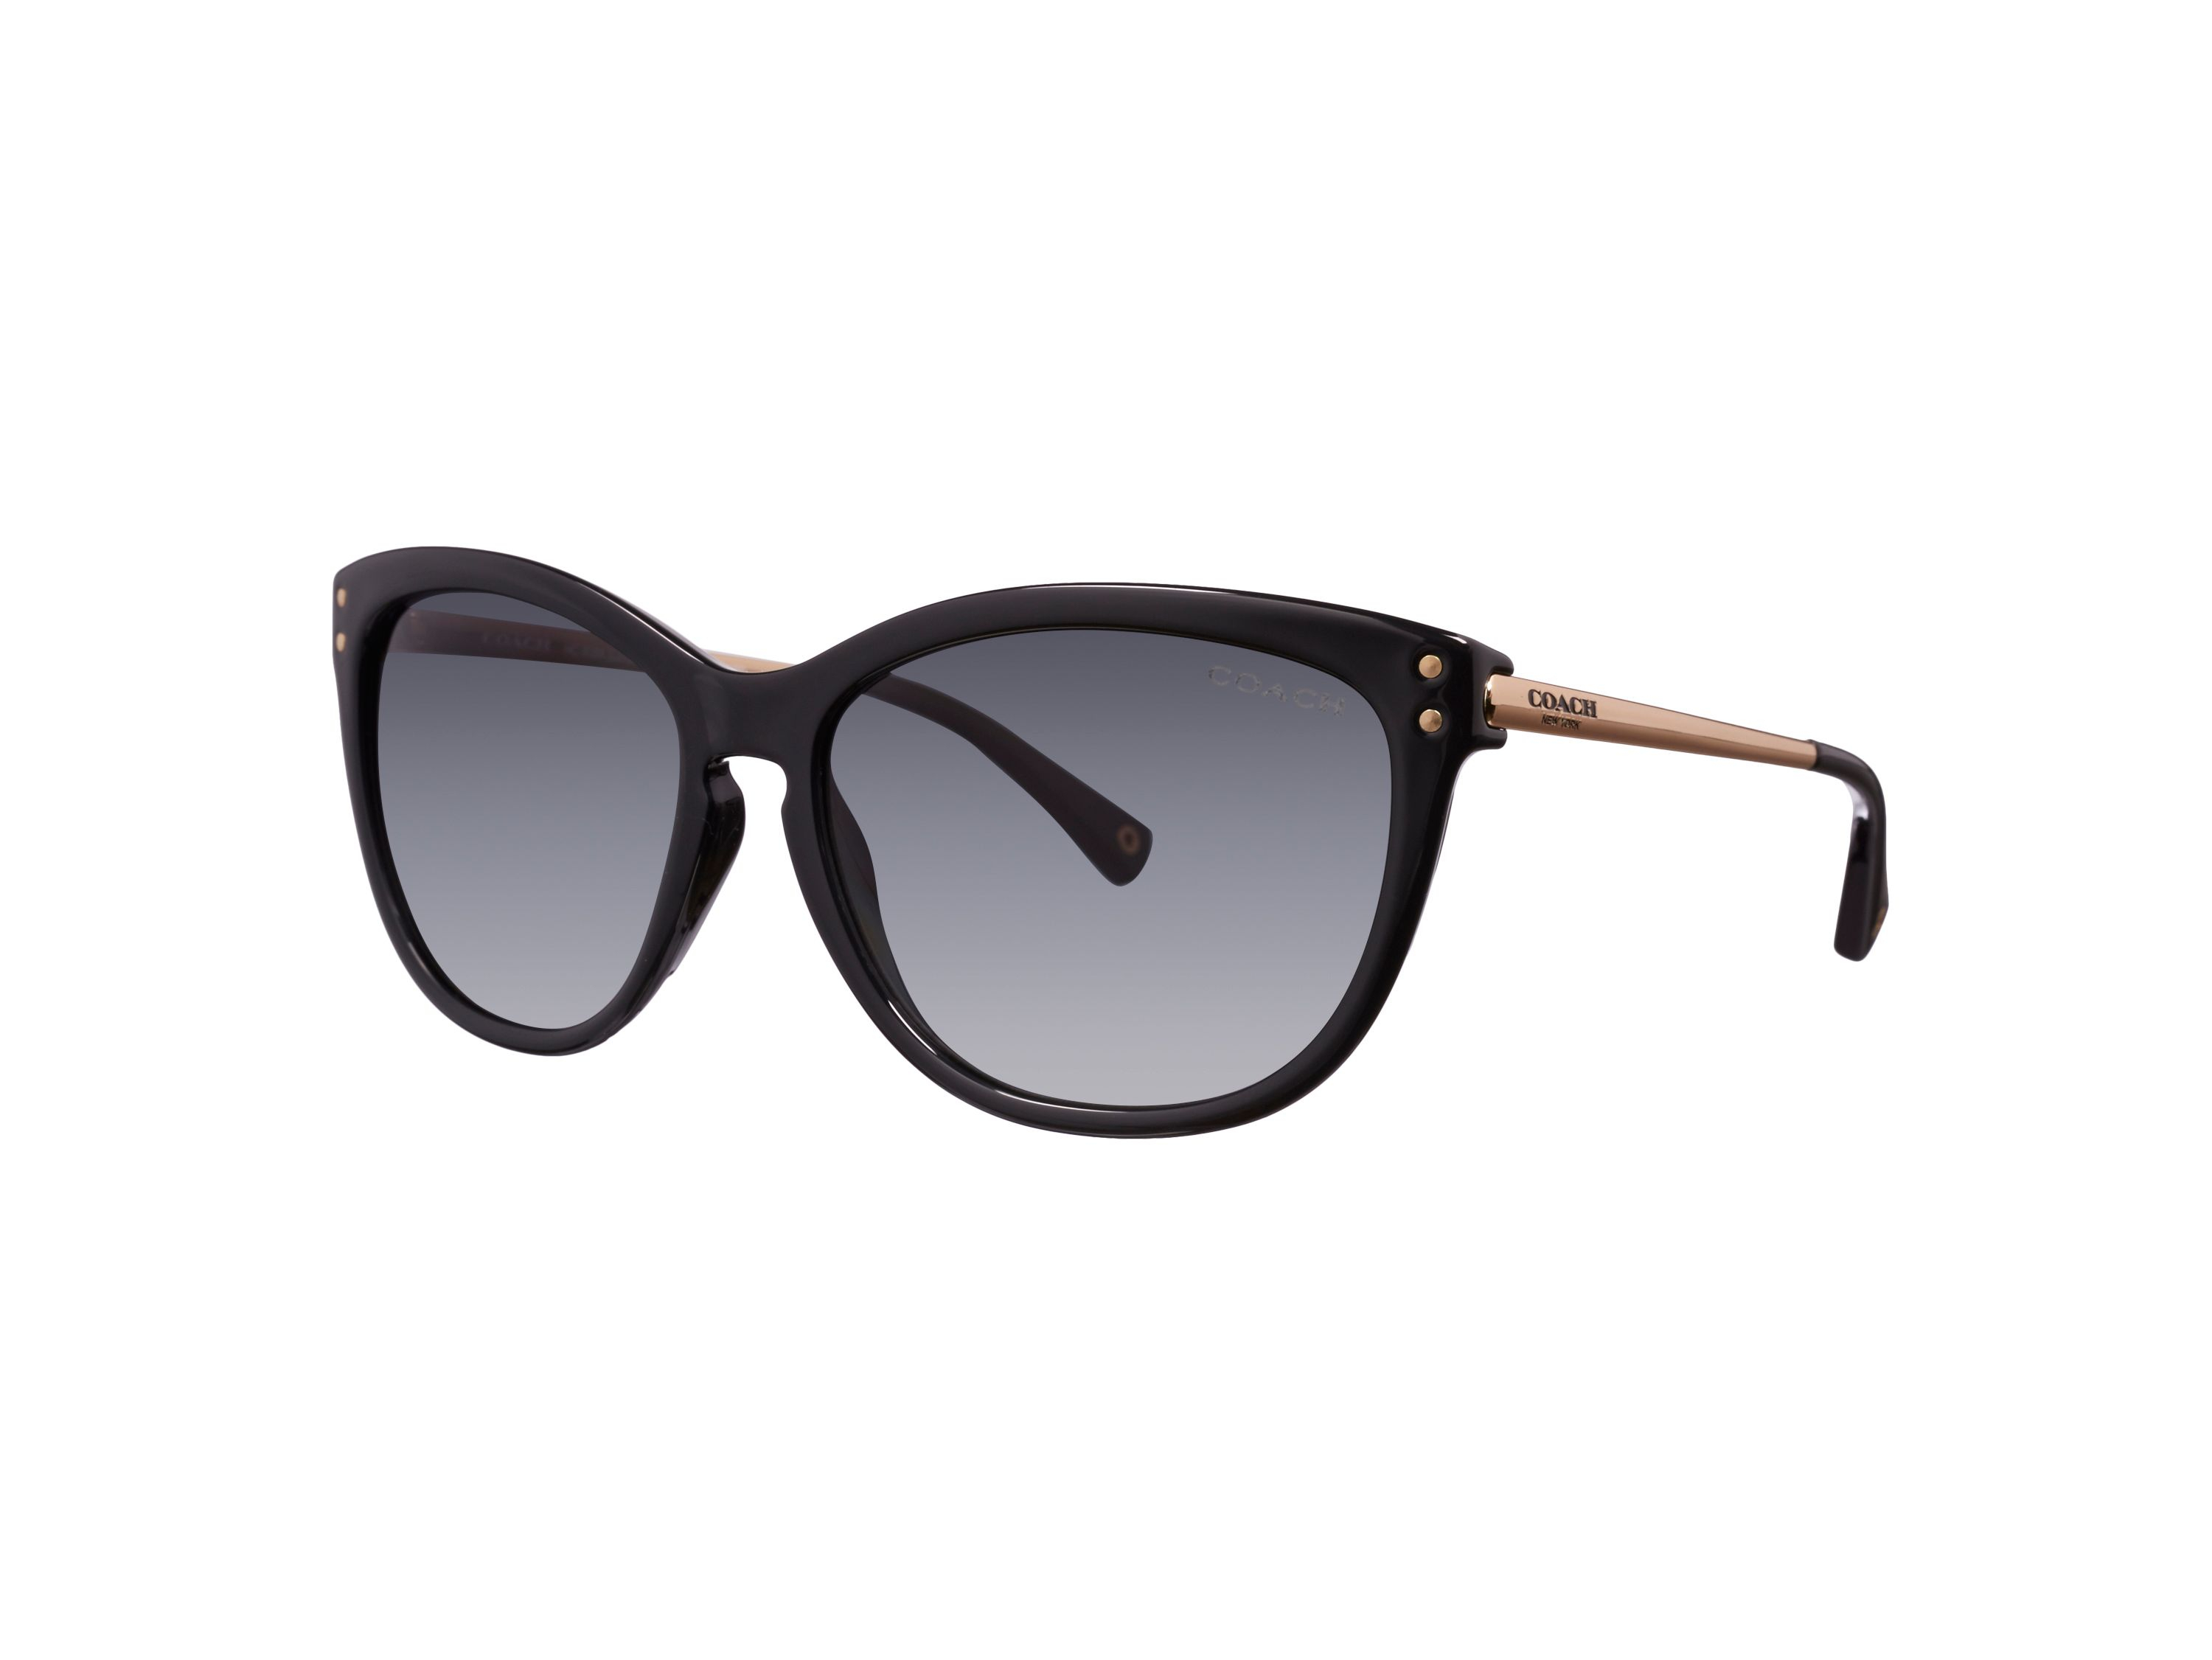 coach sunglasses women